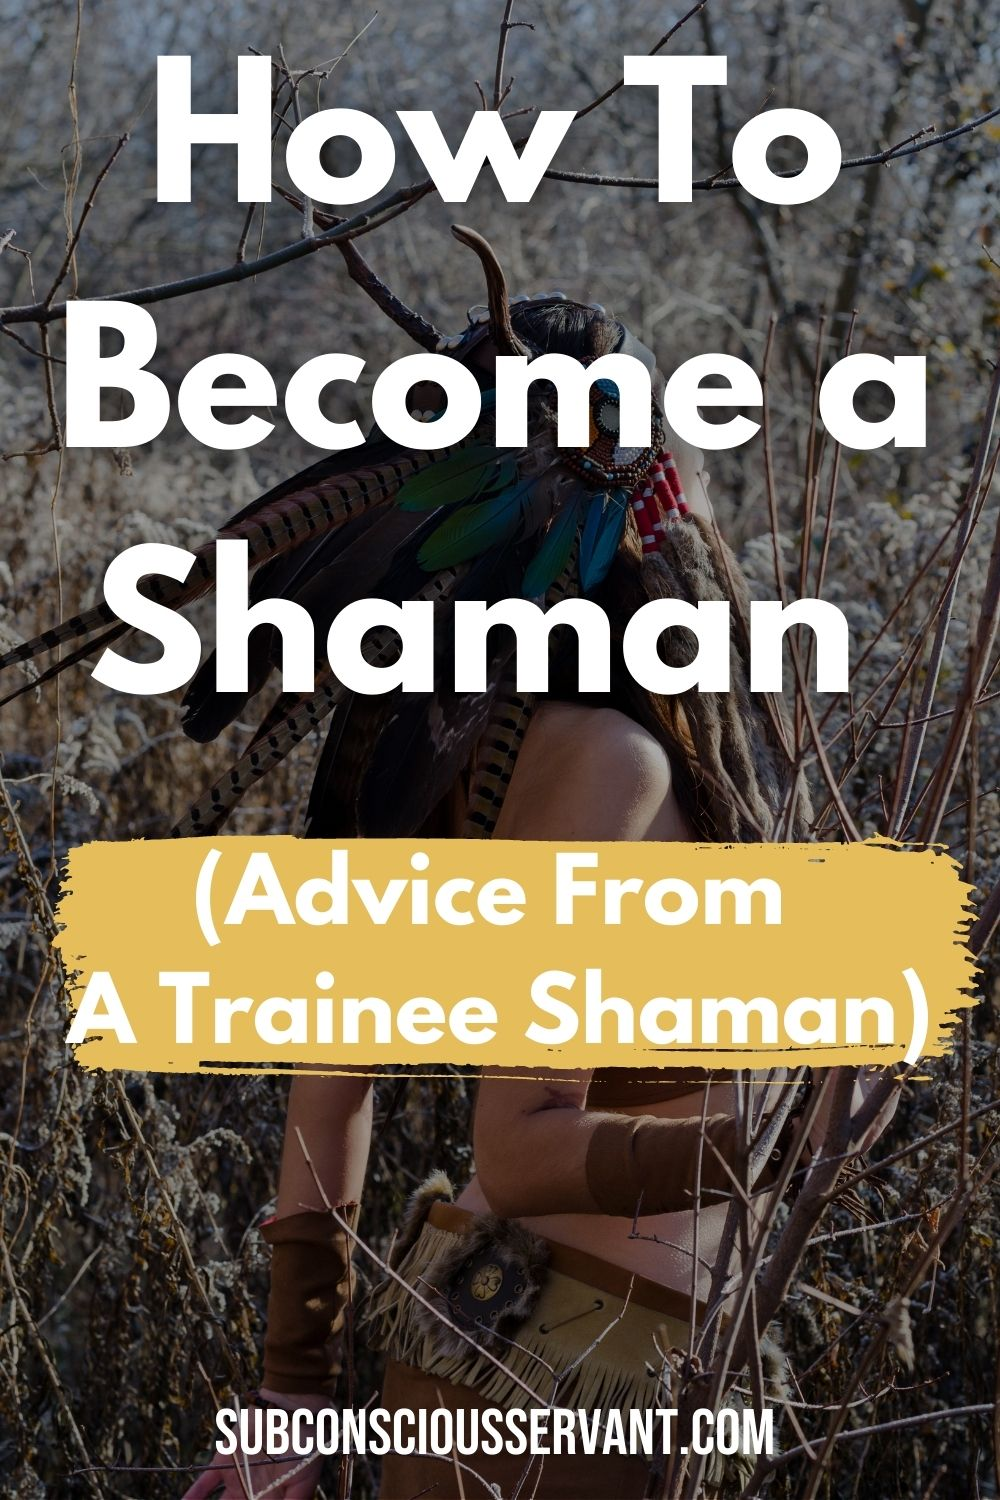 How To Become a Shaman (Advice From A Trainee Shaman)